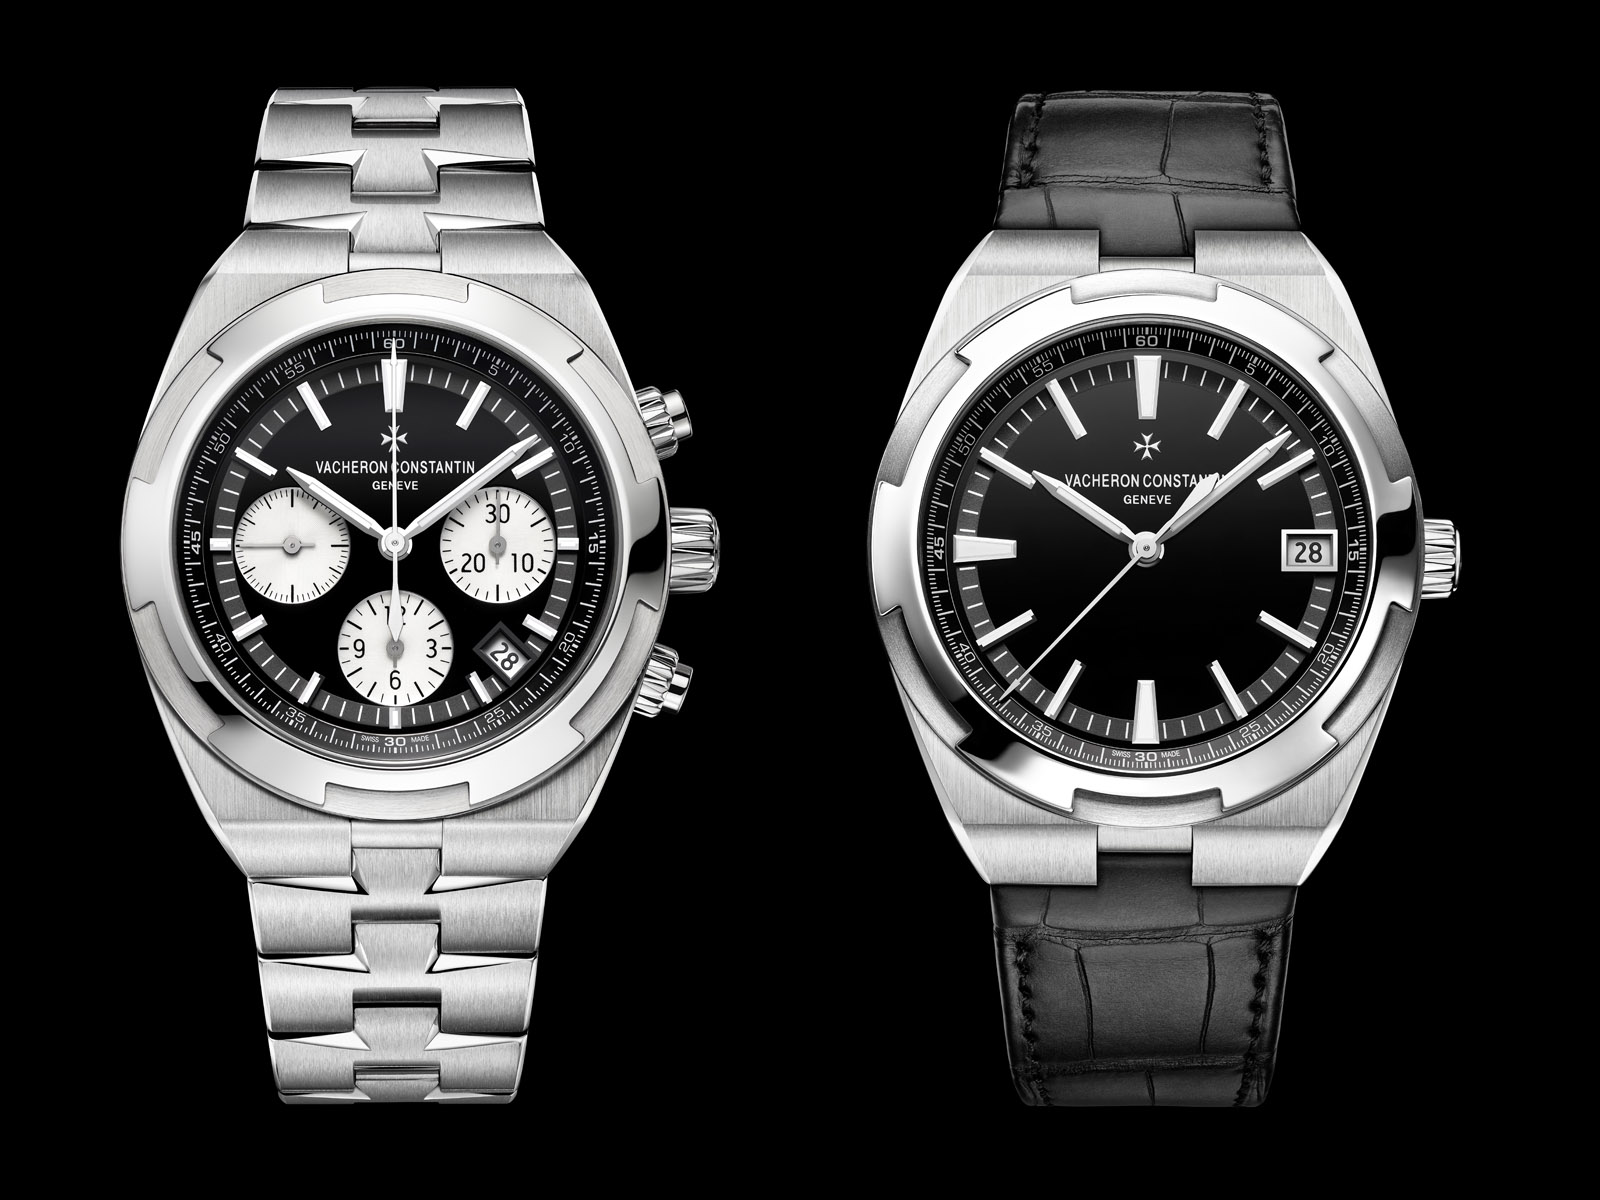 Vacheron Constantin Introduces the Overseas Automatic and Chronograph with Black Dials | SJX Watches